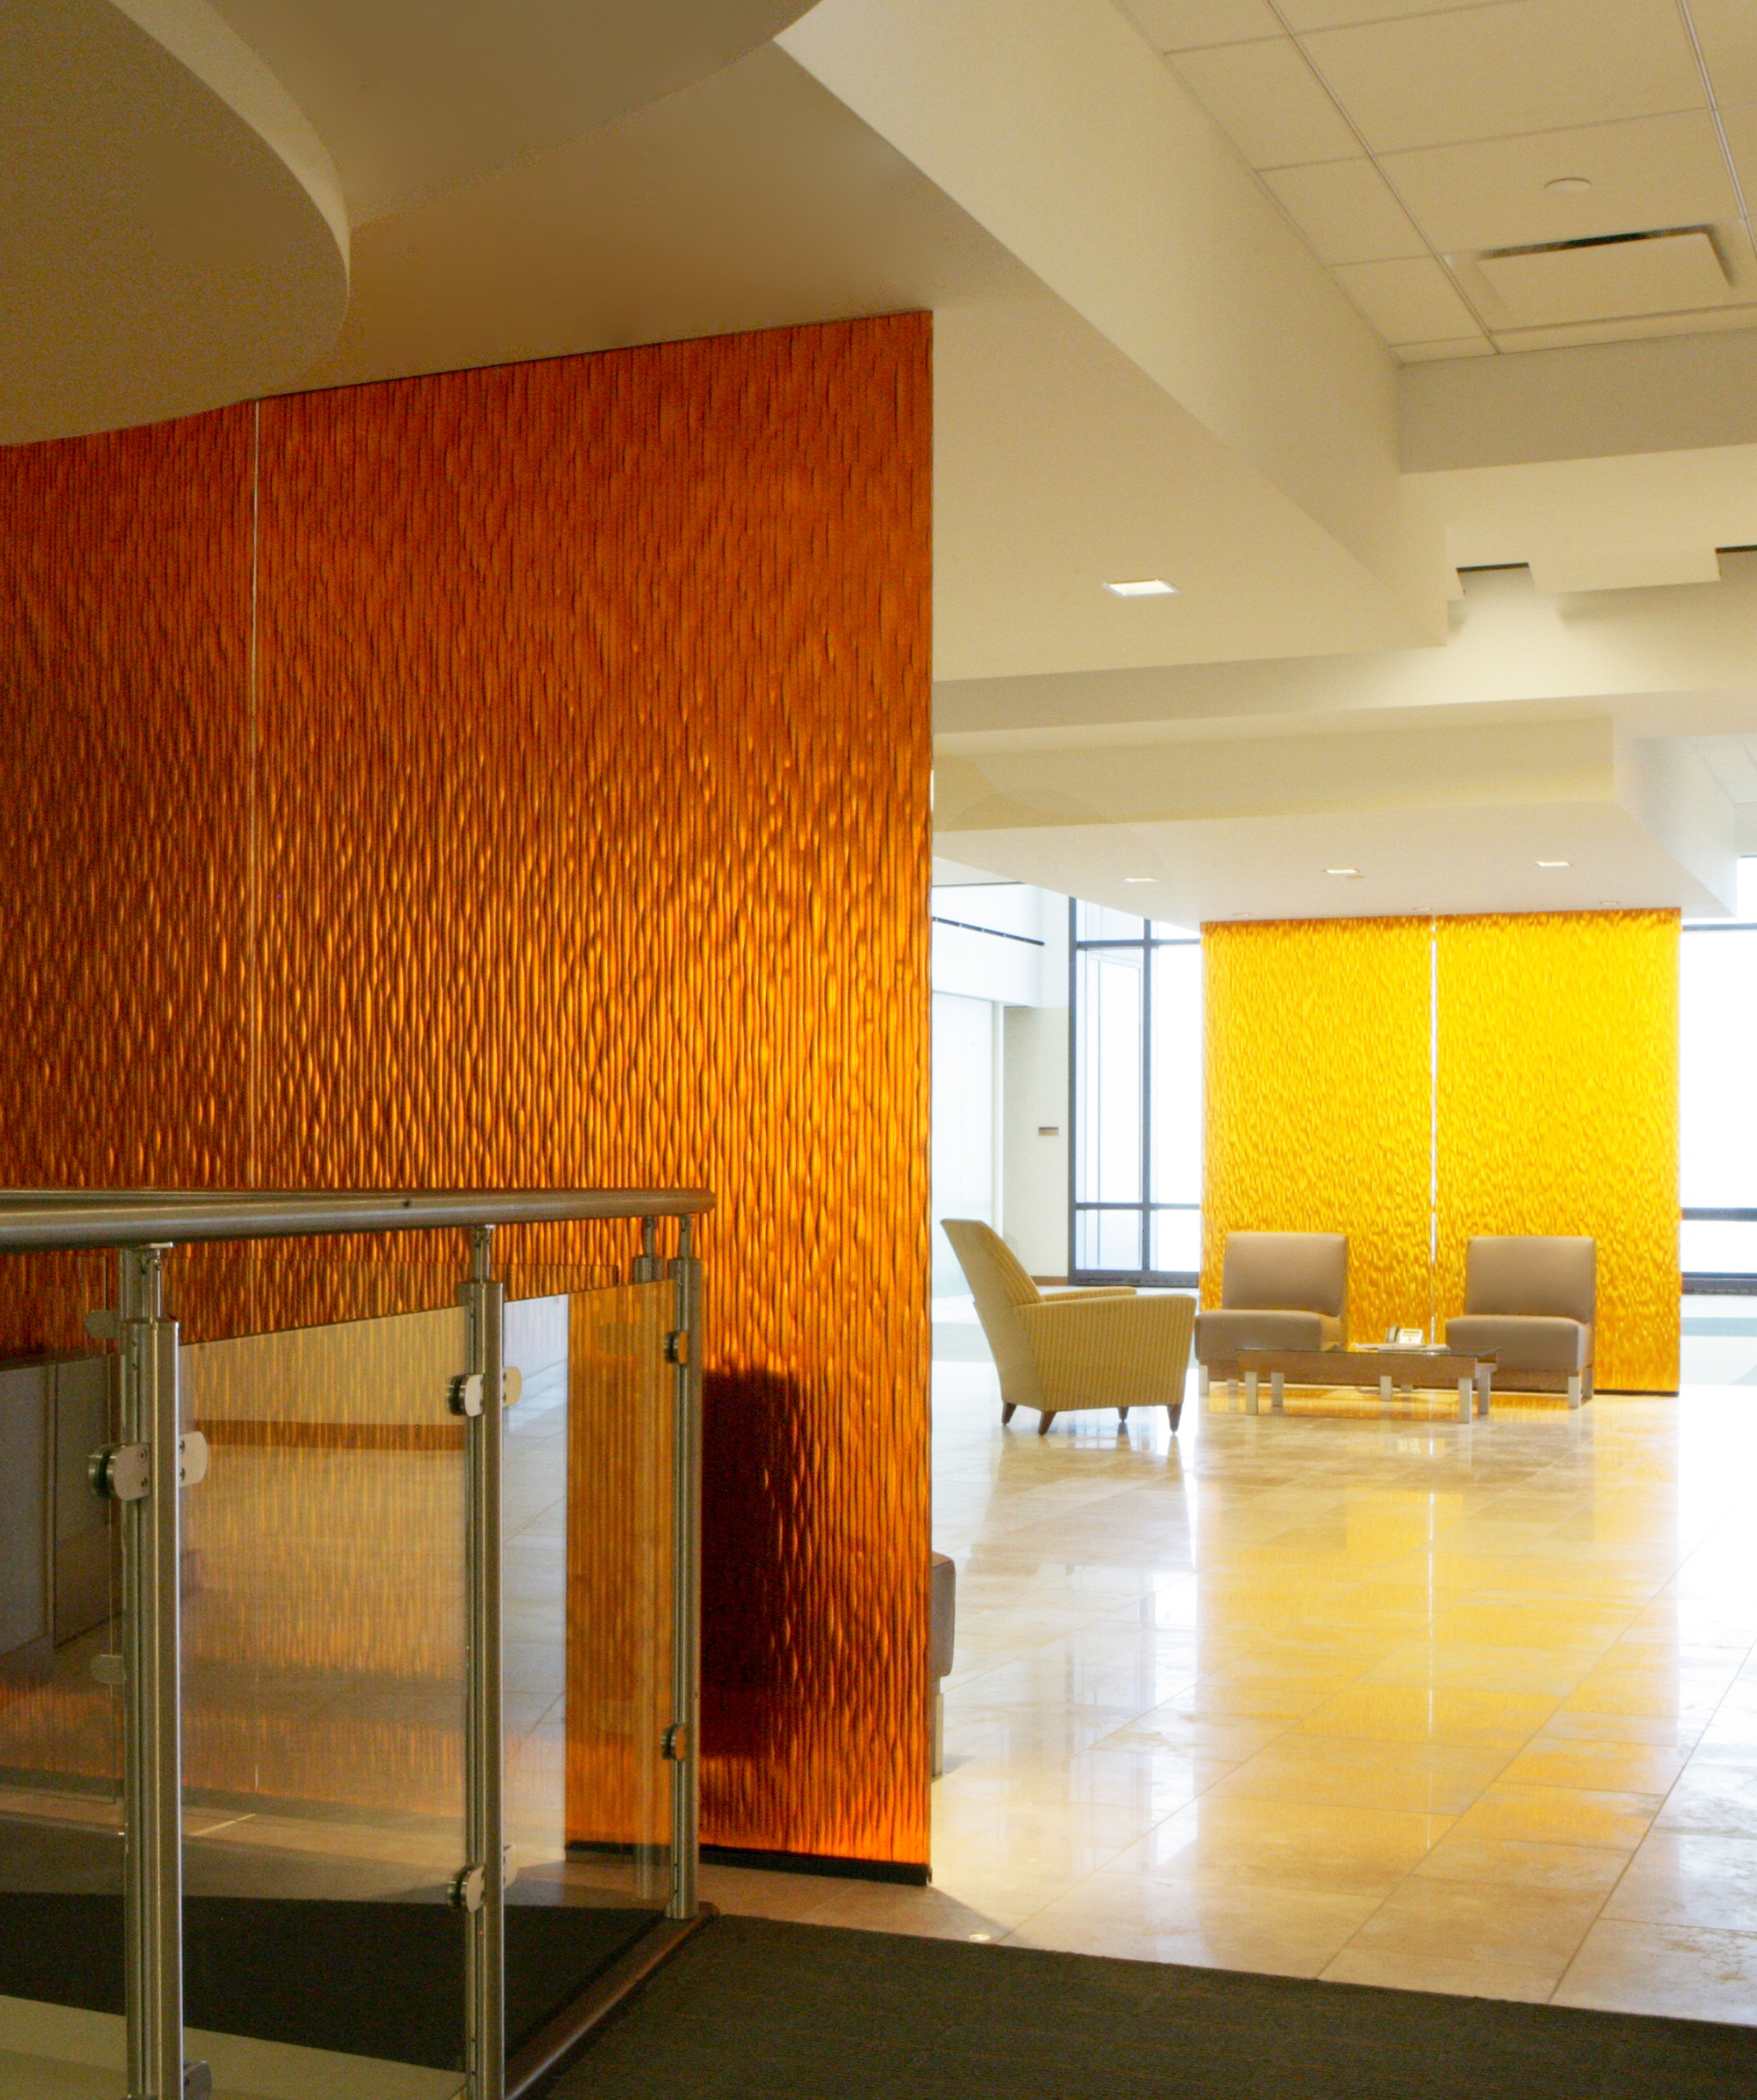 Lobby area with Stairwell HiRes2.jpg